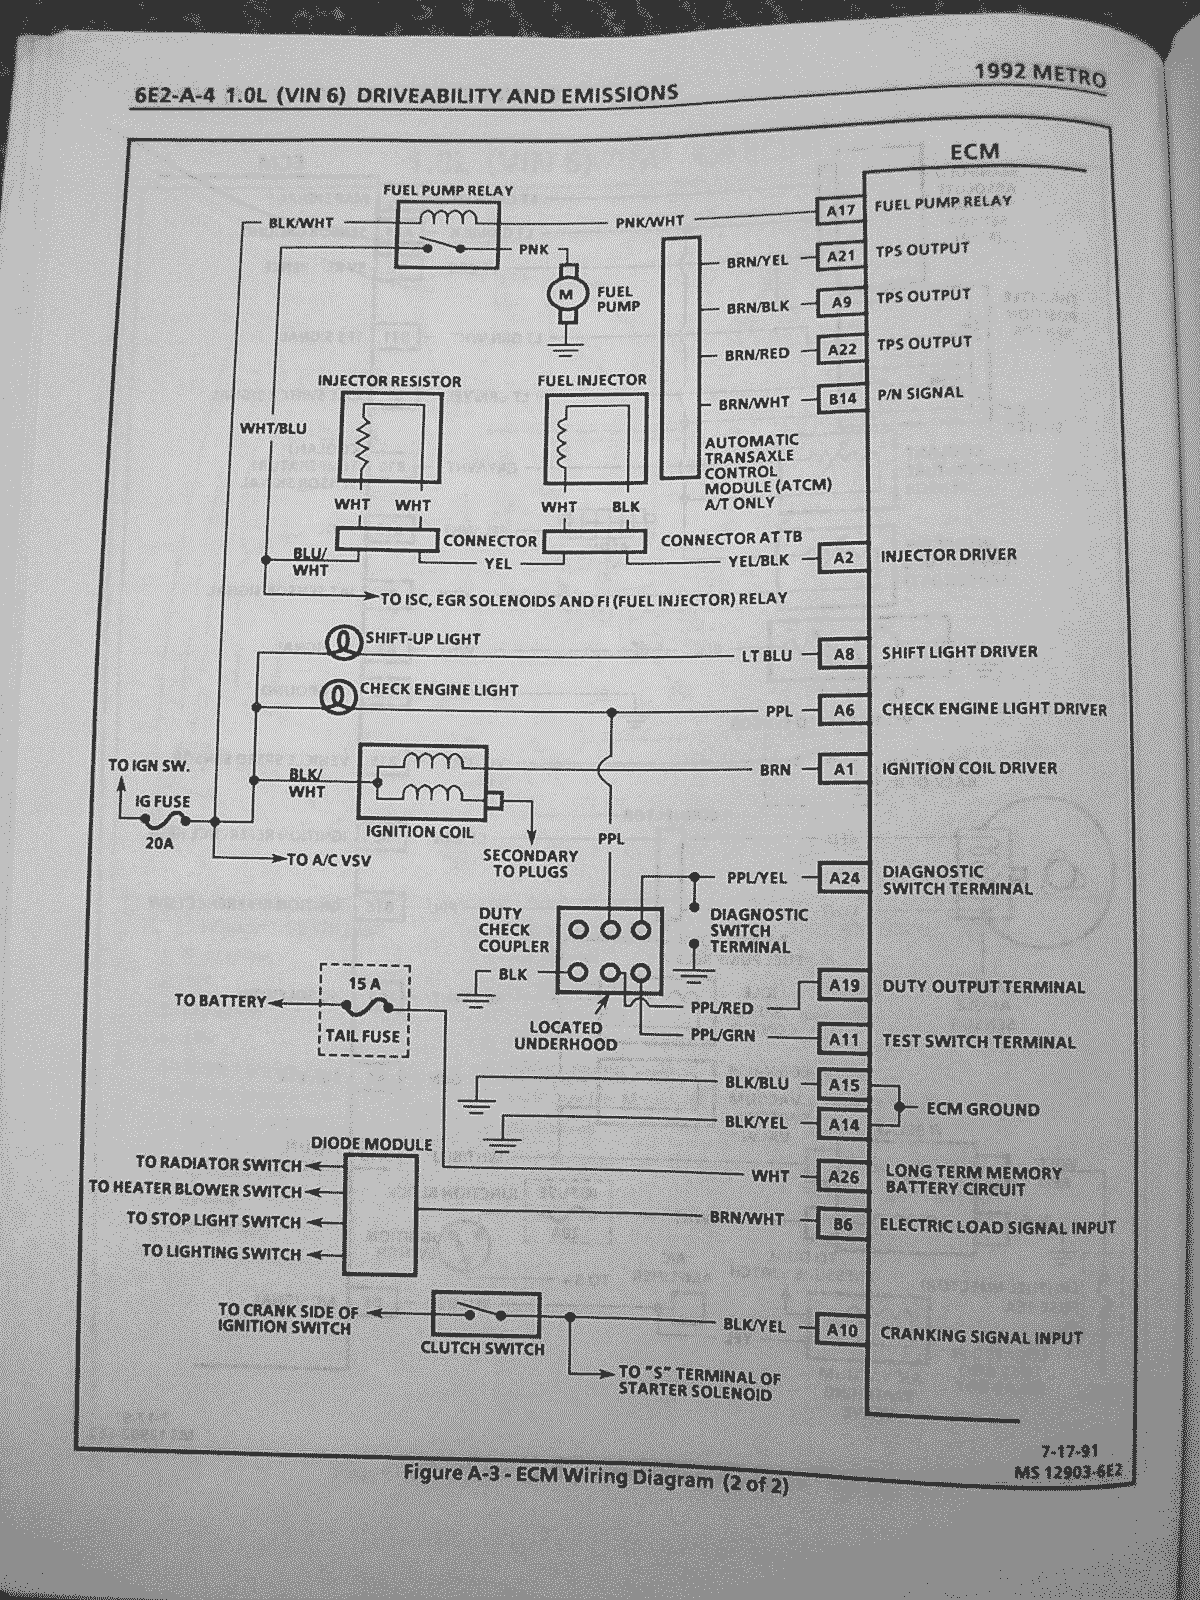 6e2 a 4 geo metro and suzuki swift wiring diagrams metroxfi com geo metro wiring diagram at gsmx.co